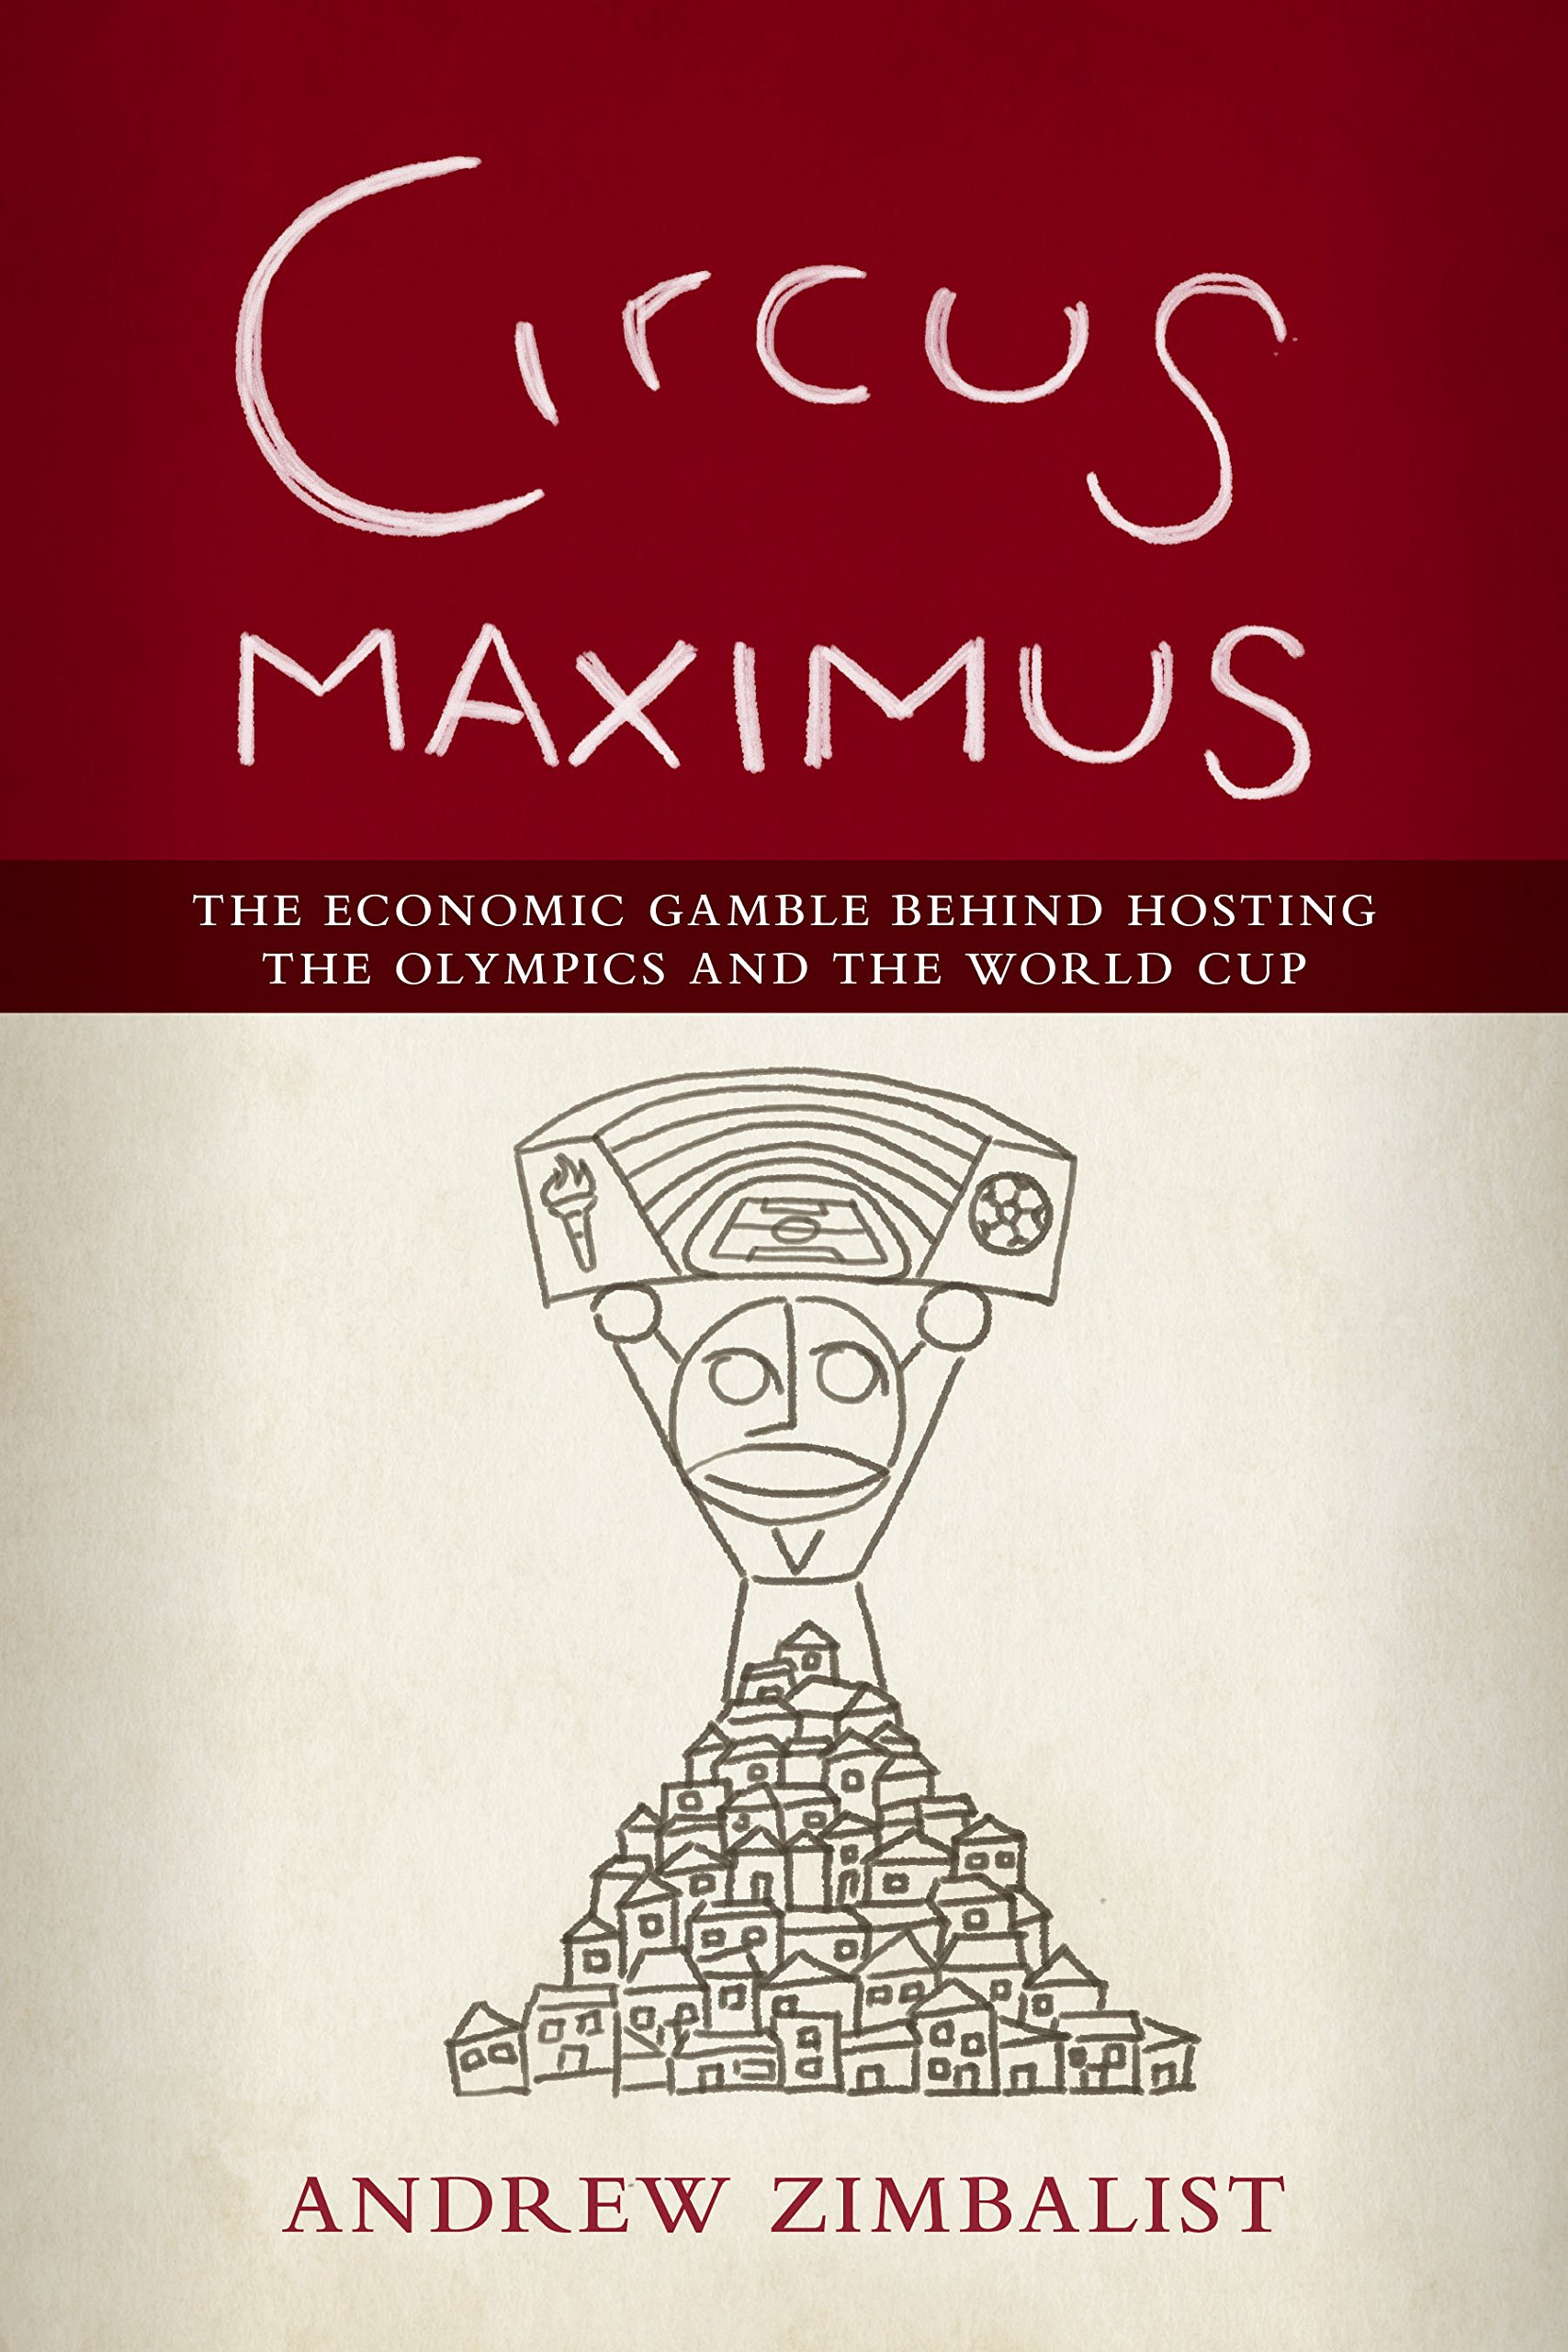 Circus Maximus: The Economic Gamble Behind Hosting the Olympics and the World Cup